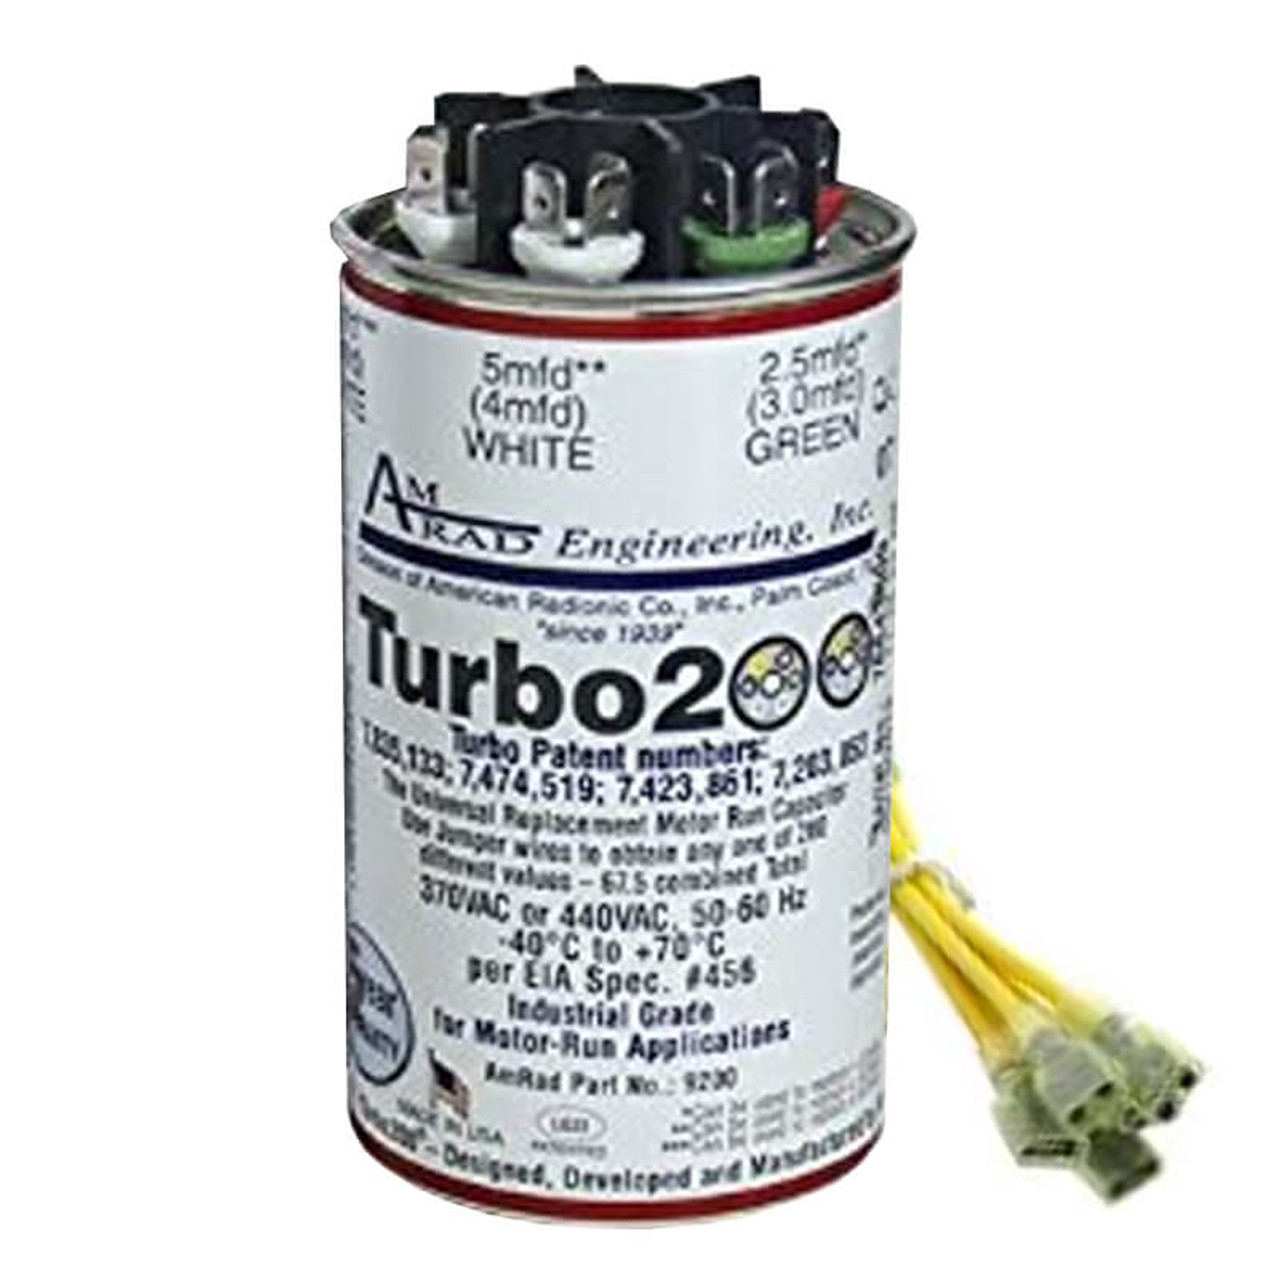 1122410 gl turbo 200 univ capacitor Home Capacitor